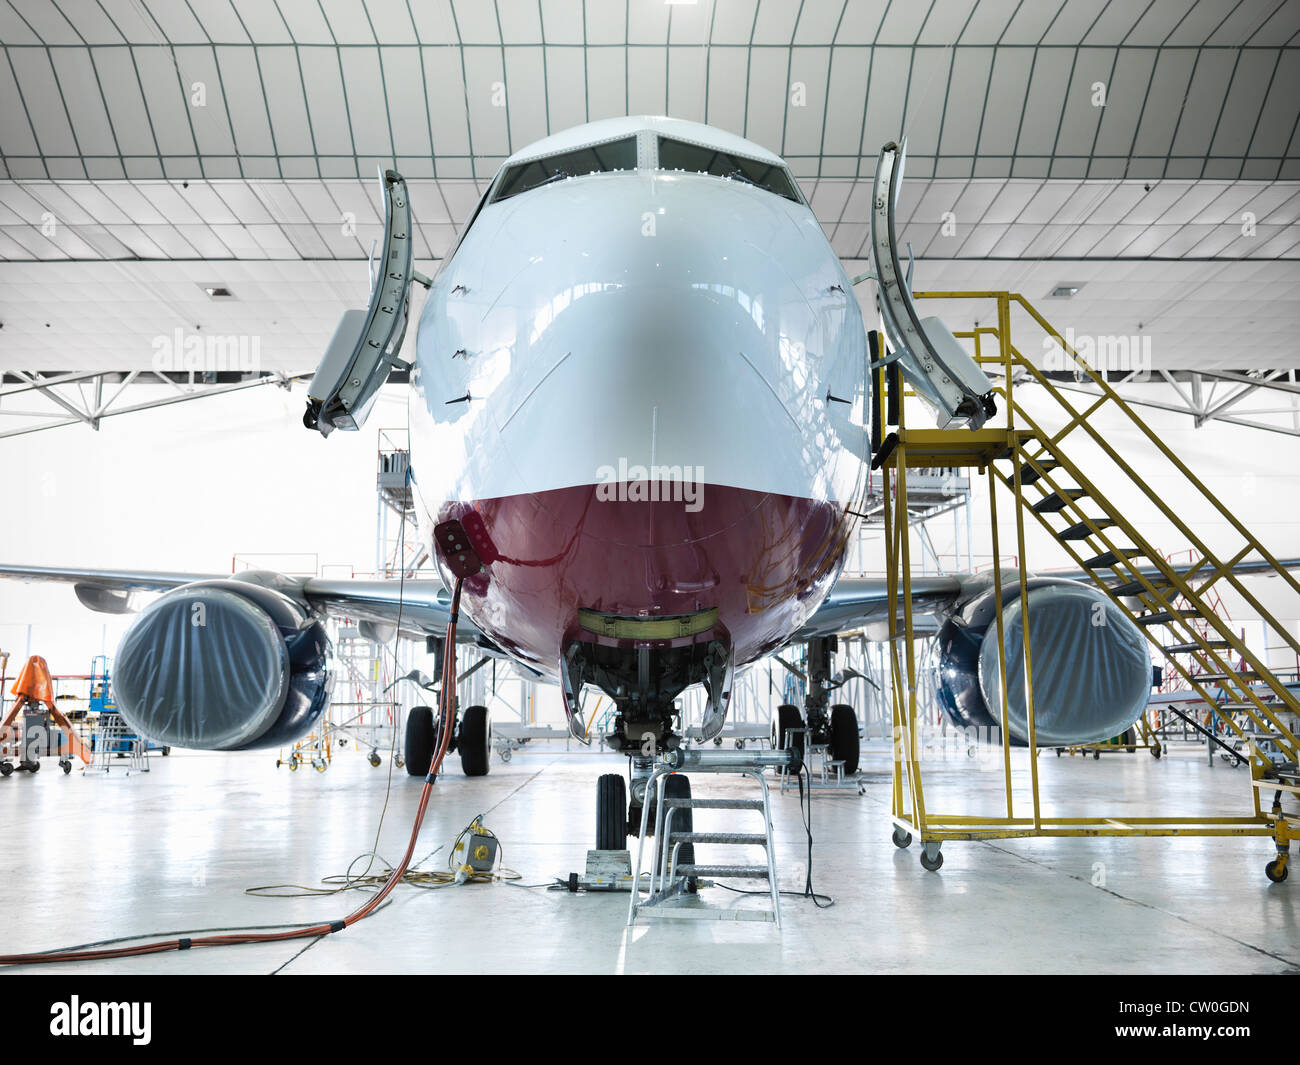 Airplane docked in hangar - Stock Image